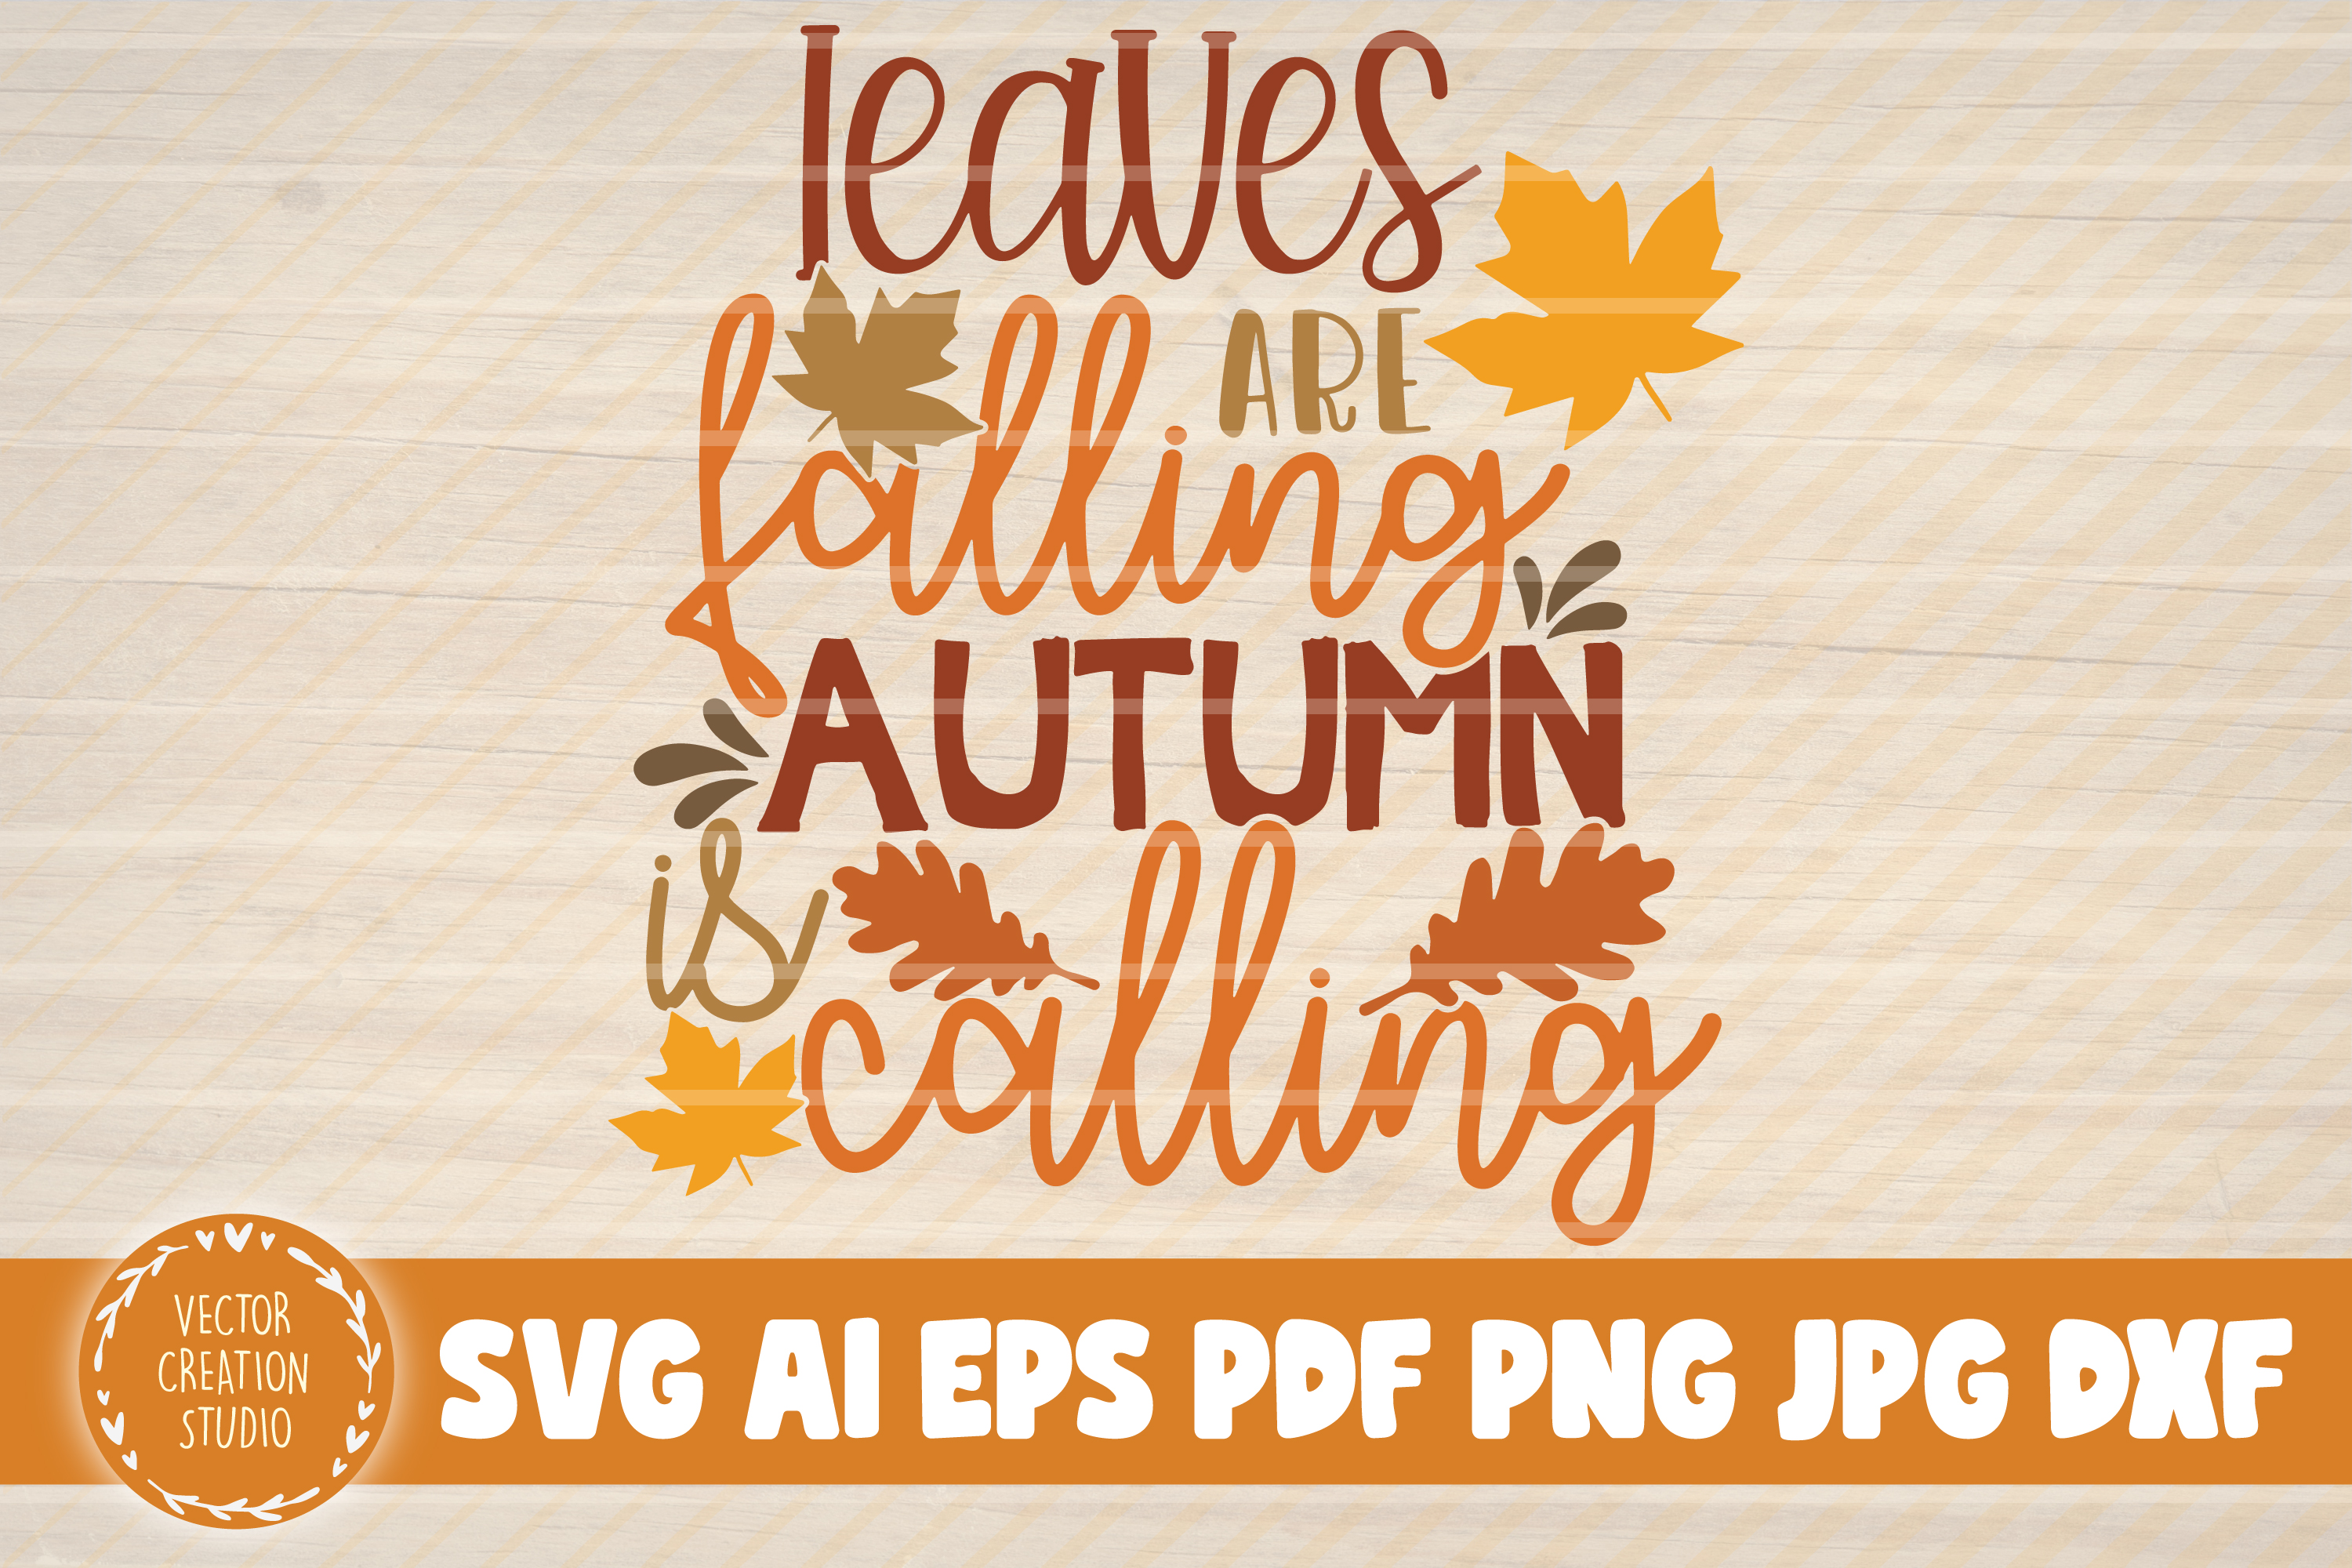 Leaves Are Falling Autumn Is Calling Graphic By Vectorcreationstudio Creative Fabrica